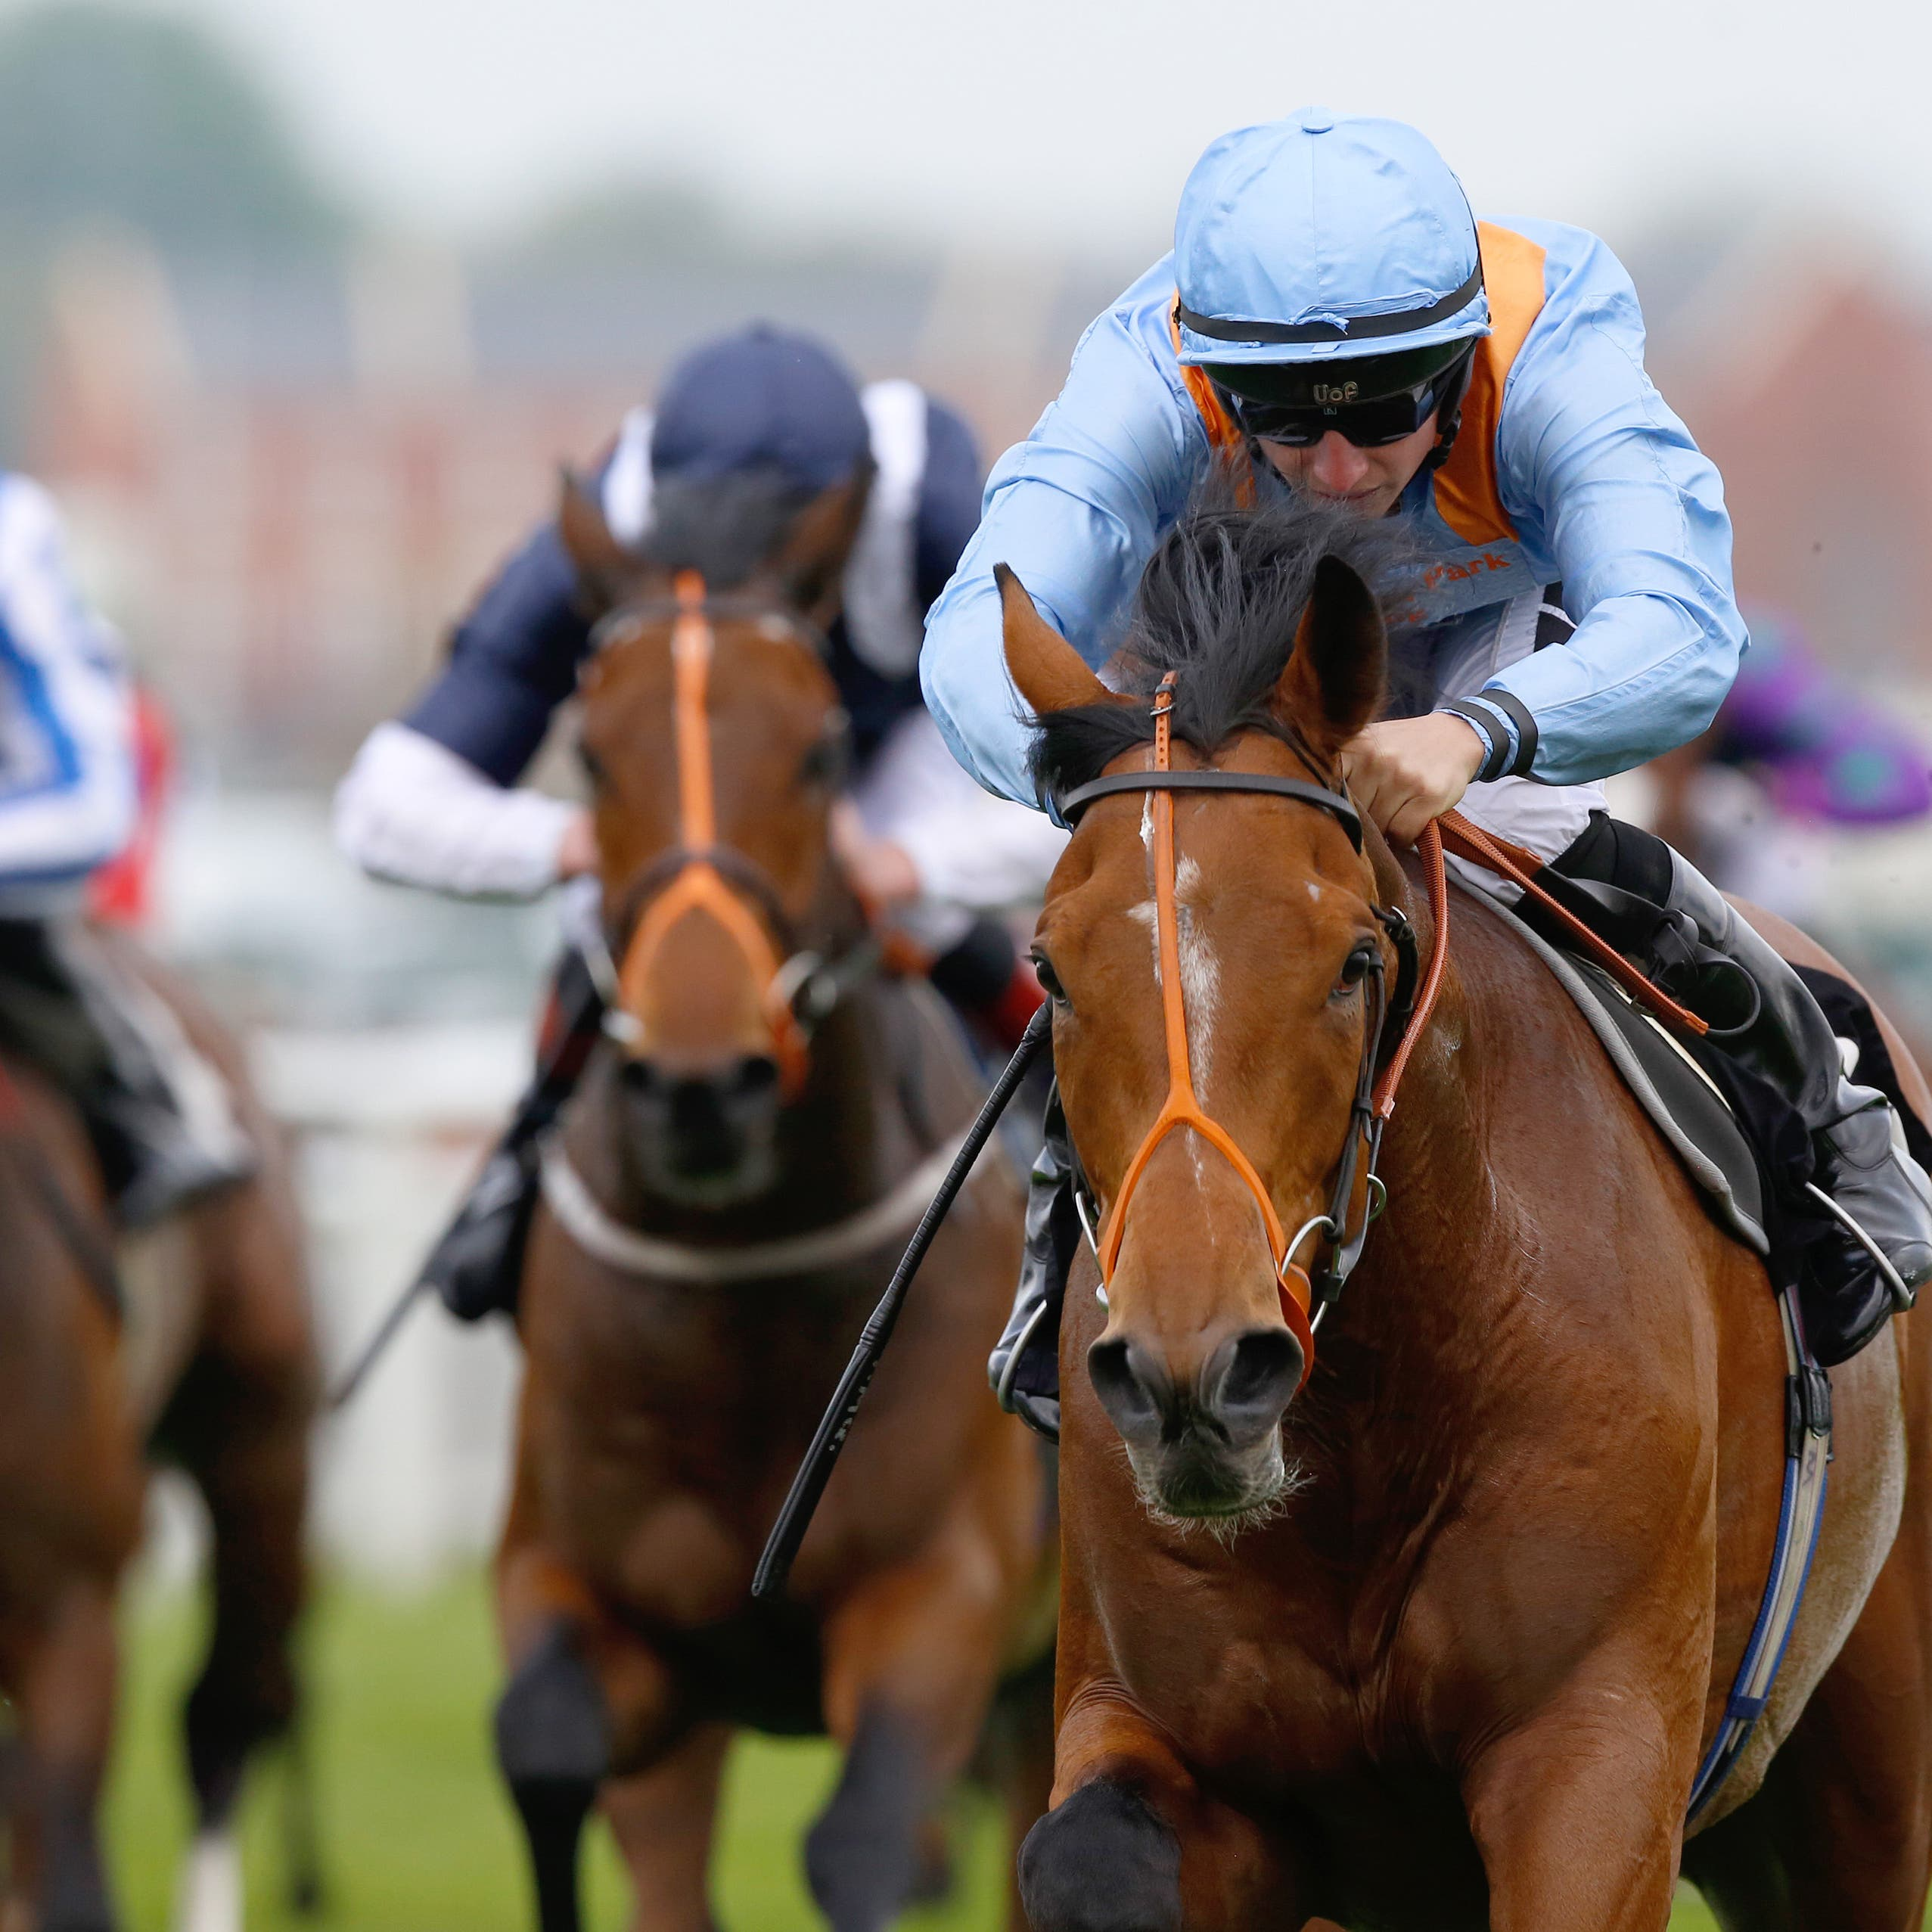 Raymond Tusk in winning action at Newbury